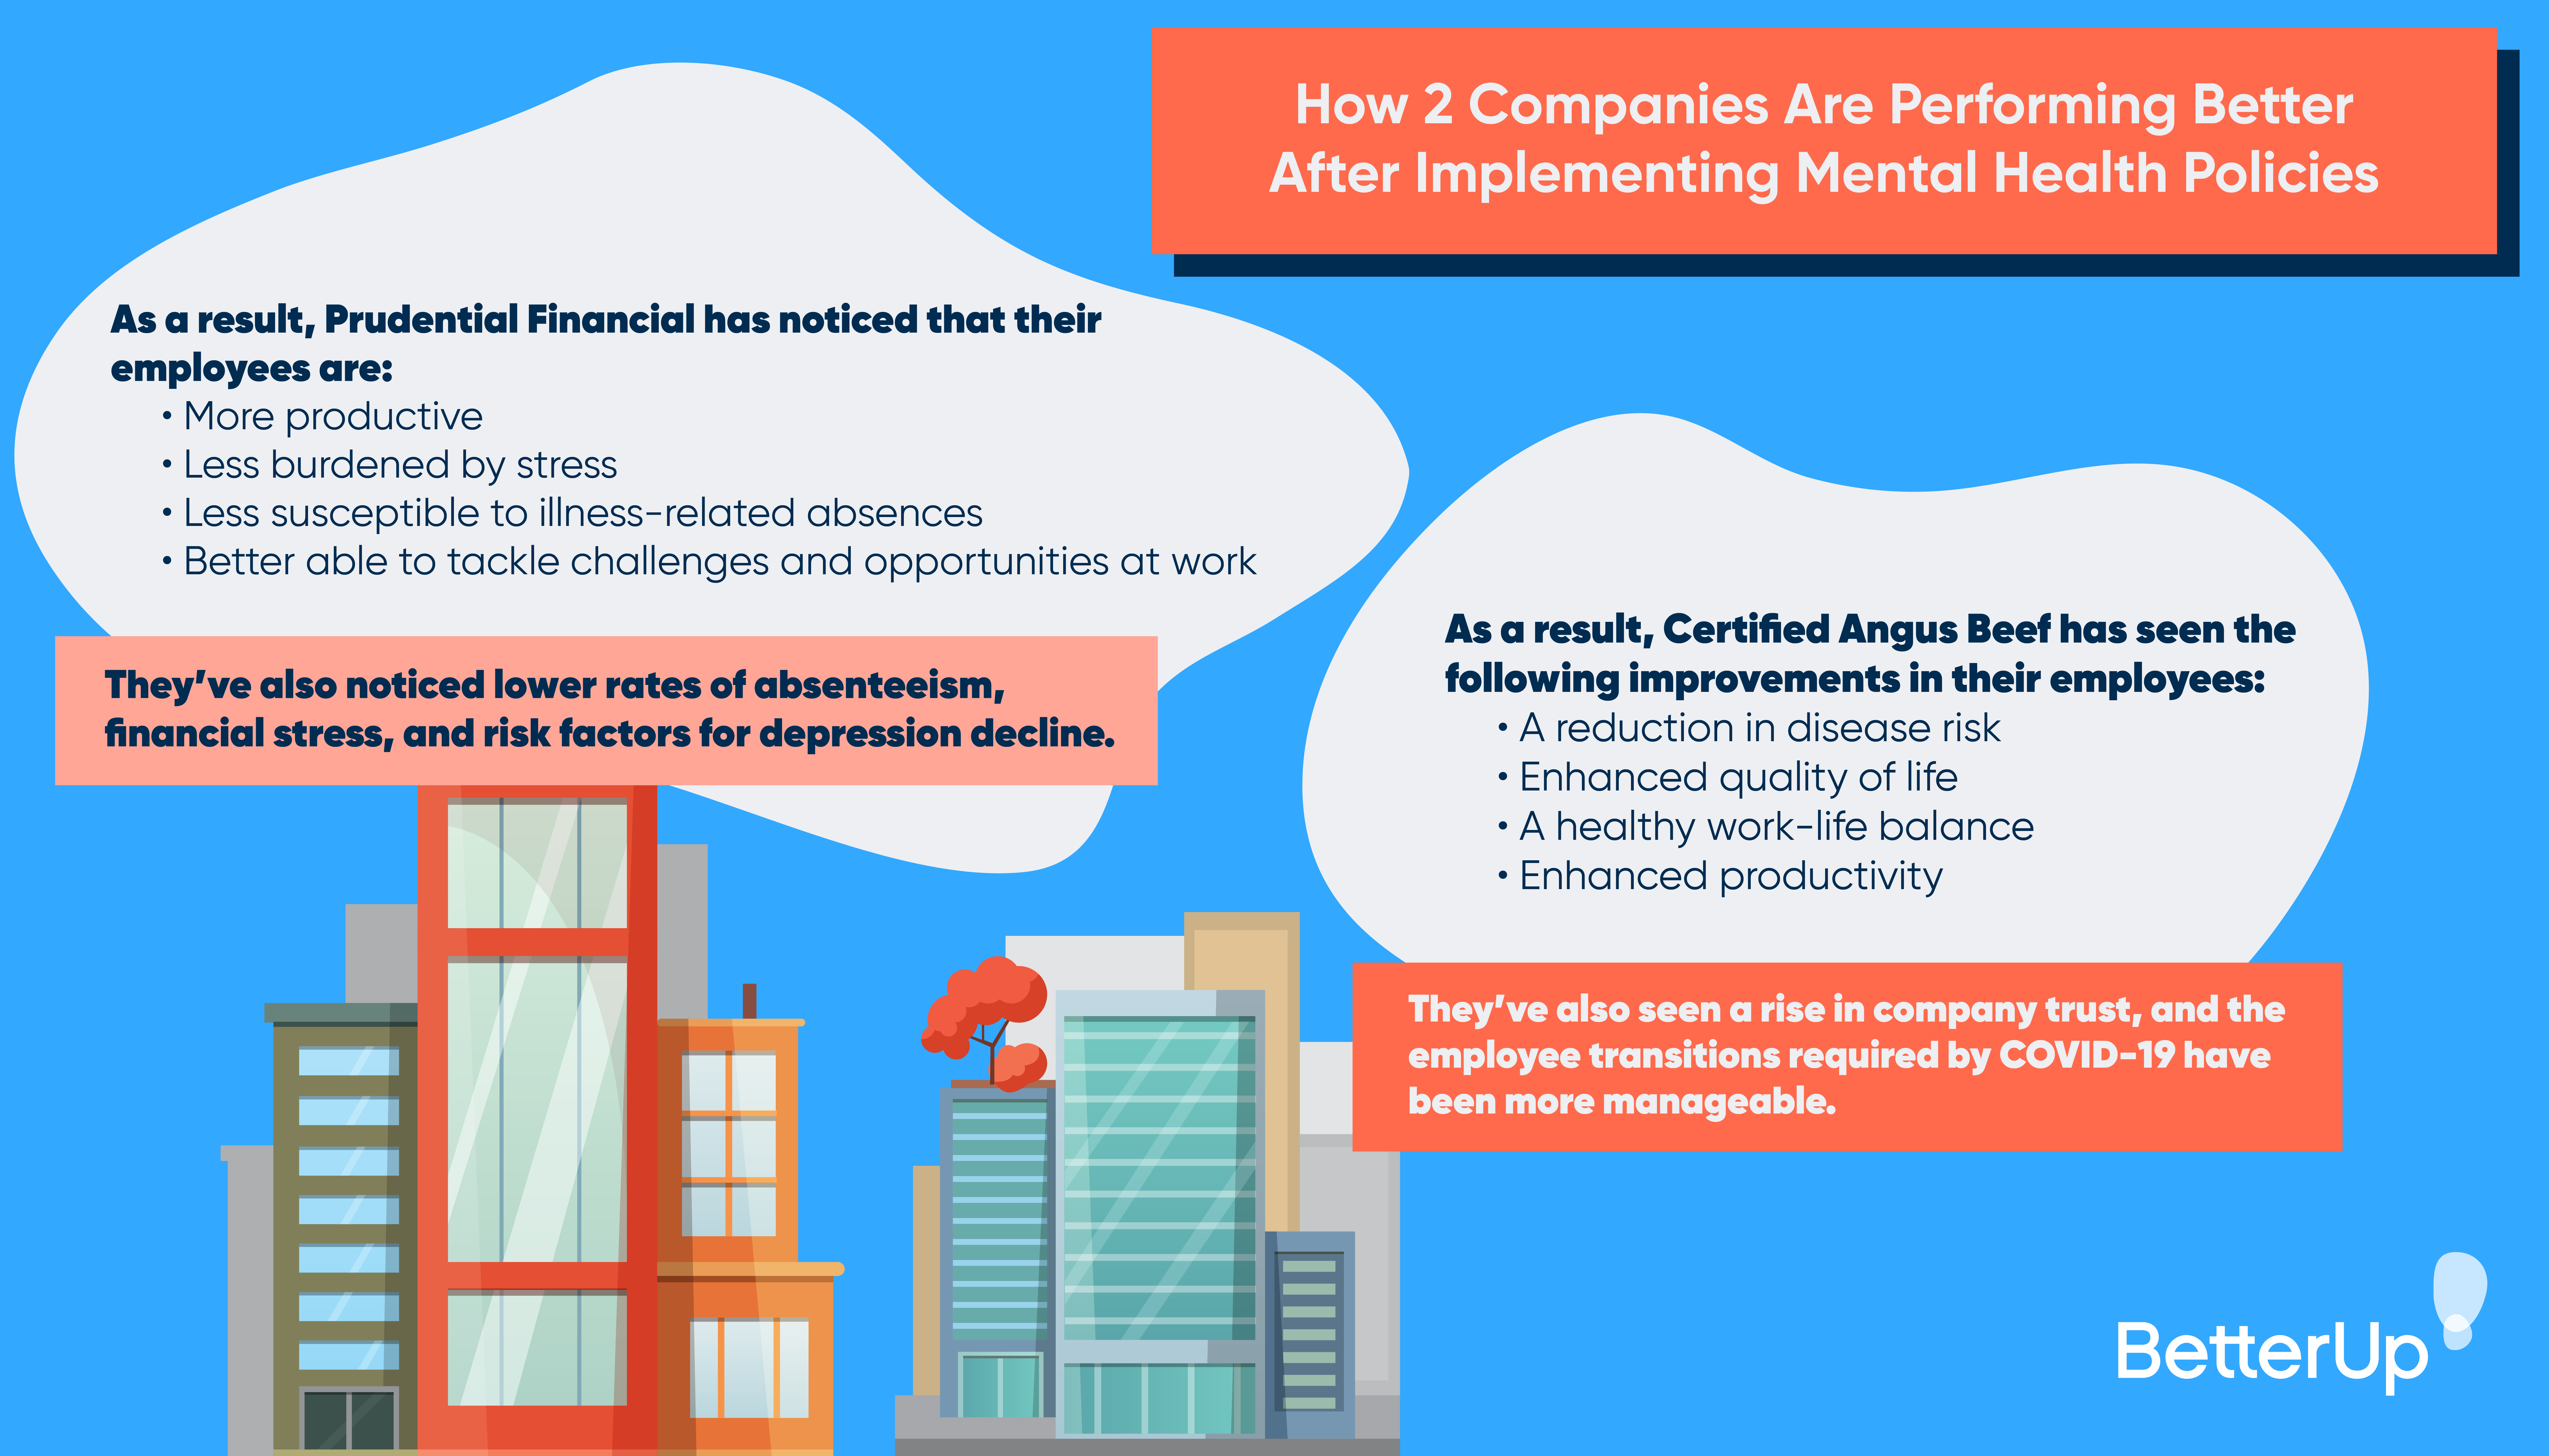 performance of 2 companies after implementing mental health policies